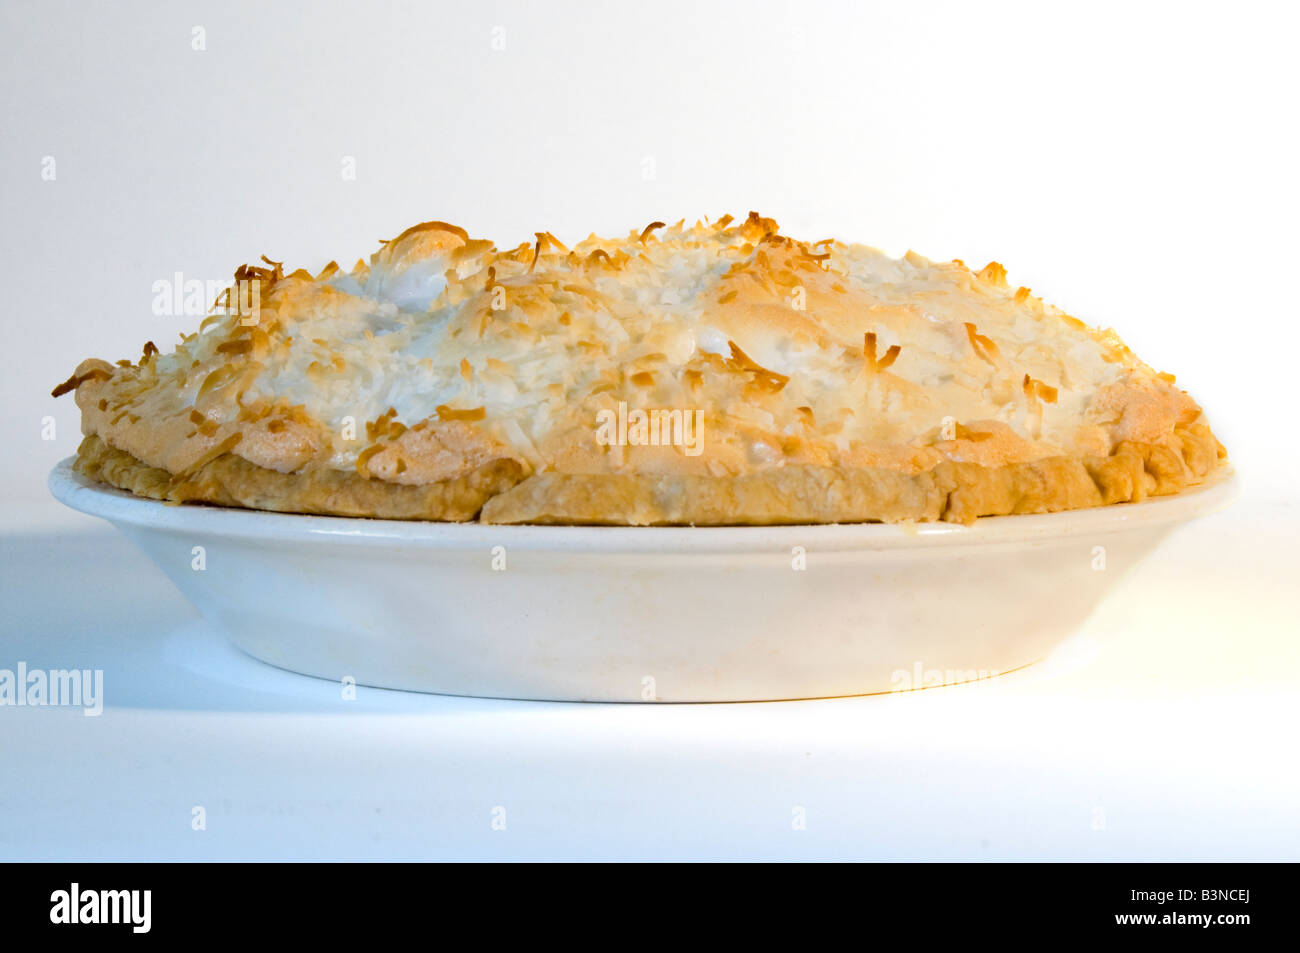 a-coconut-cream-pie-on-a-white-backgroun